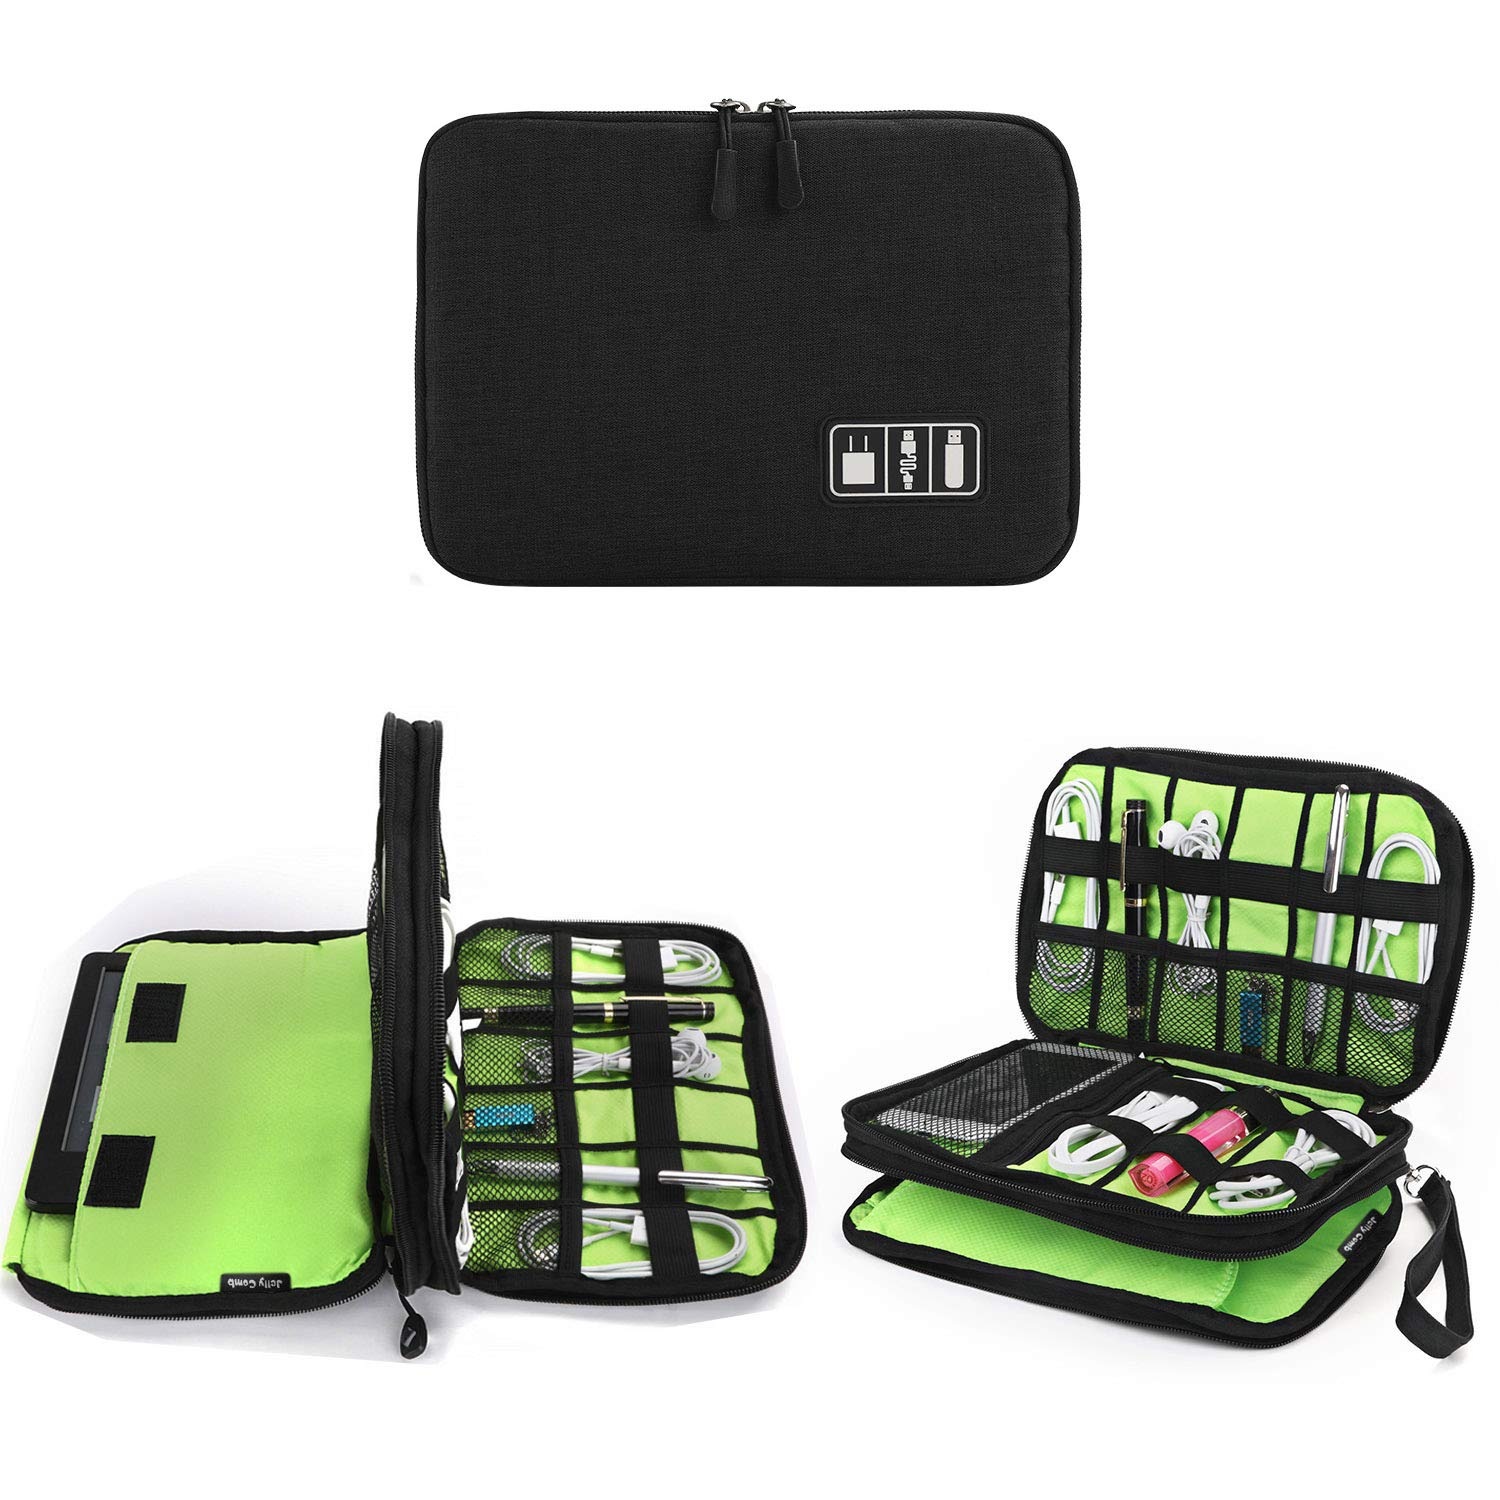 Electronics Organizer, Jelly Comb Electronic Accessories Cable Organizer Bag Waterproof Travel Cable Storage Bag for Charging Cable, Cellphone, Mini Tablet and More (Black and Green)